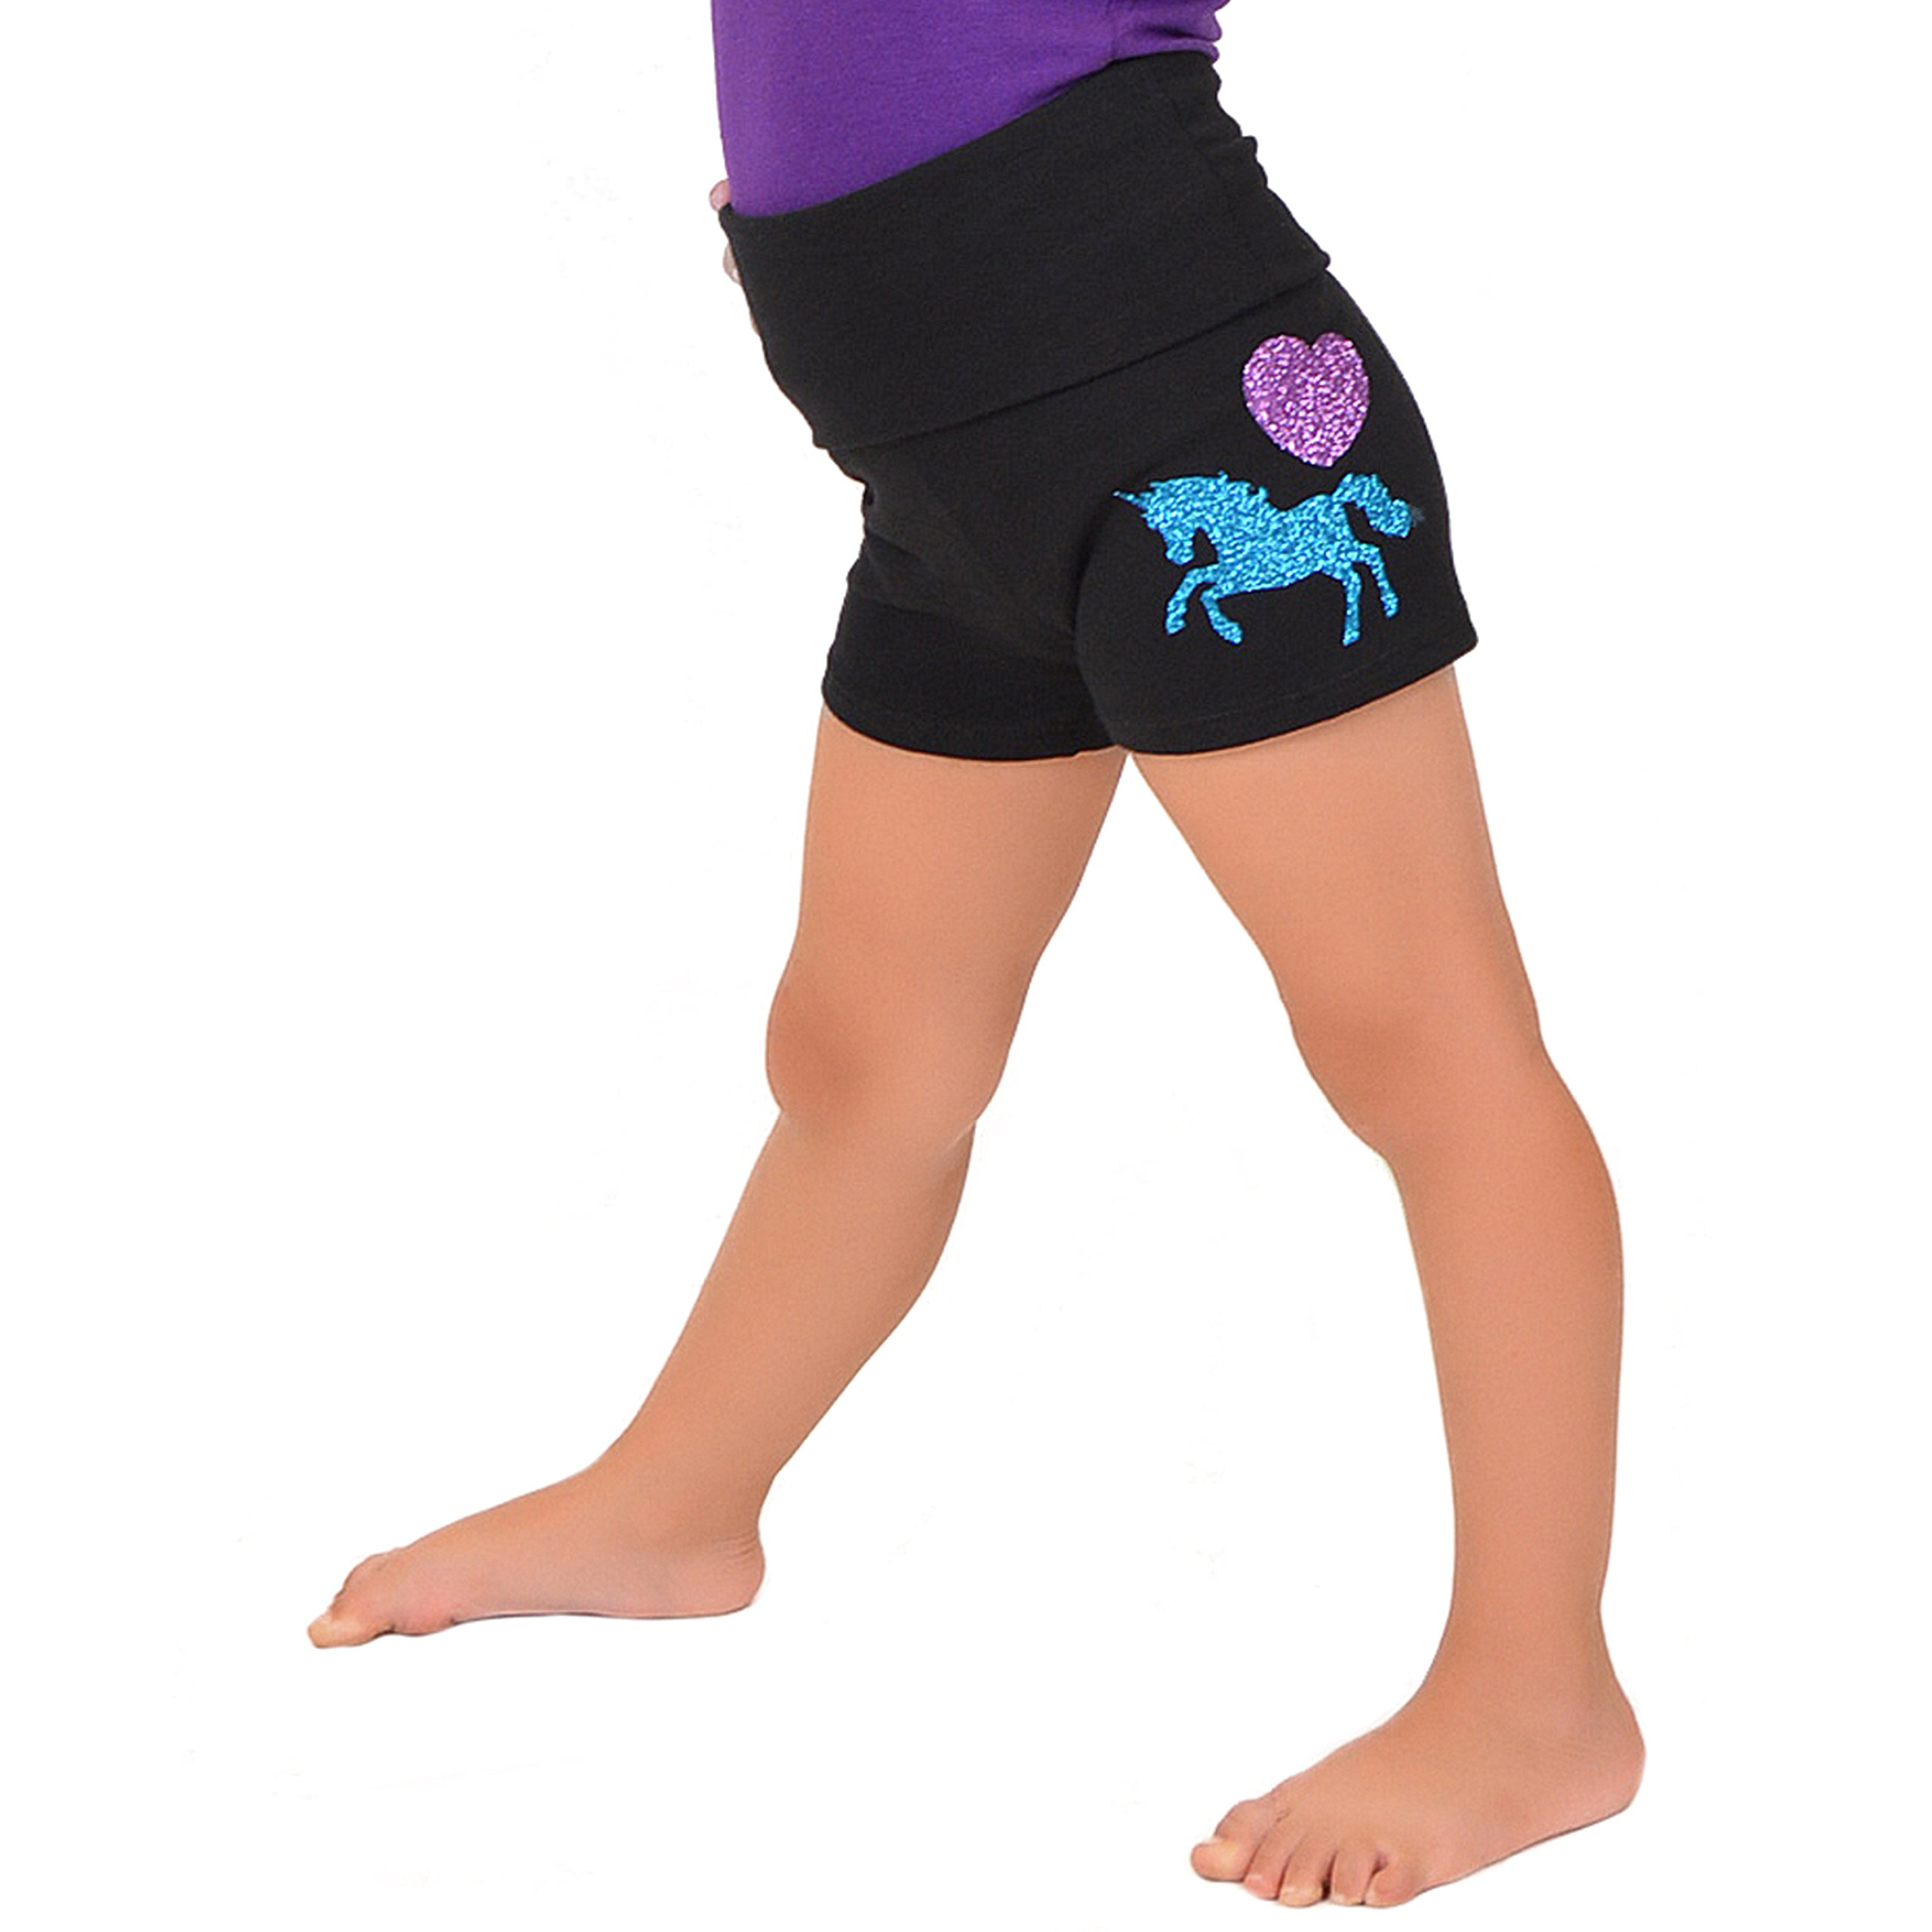 Stretch is Comfort Girl's Vinyl Pink Heart Unicorn Yoga Shorts X-Large by Stretch is Comfort (Image #1)